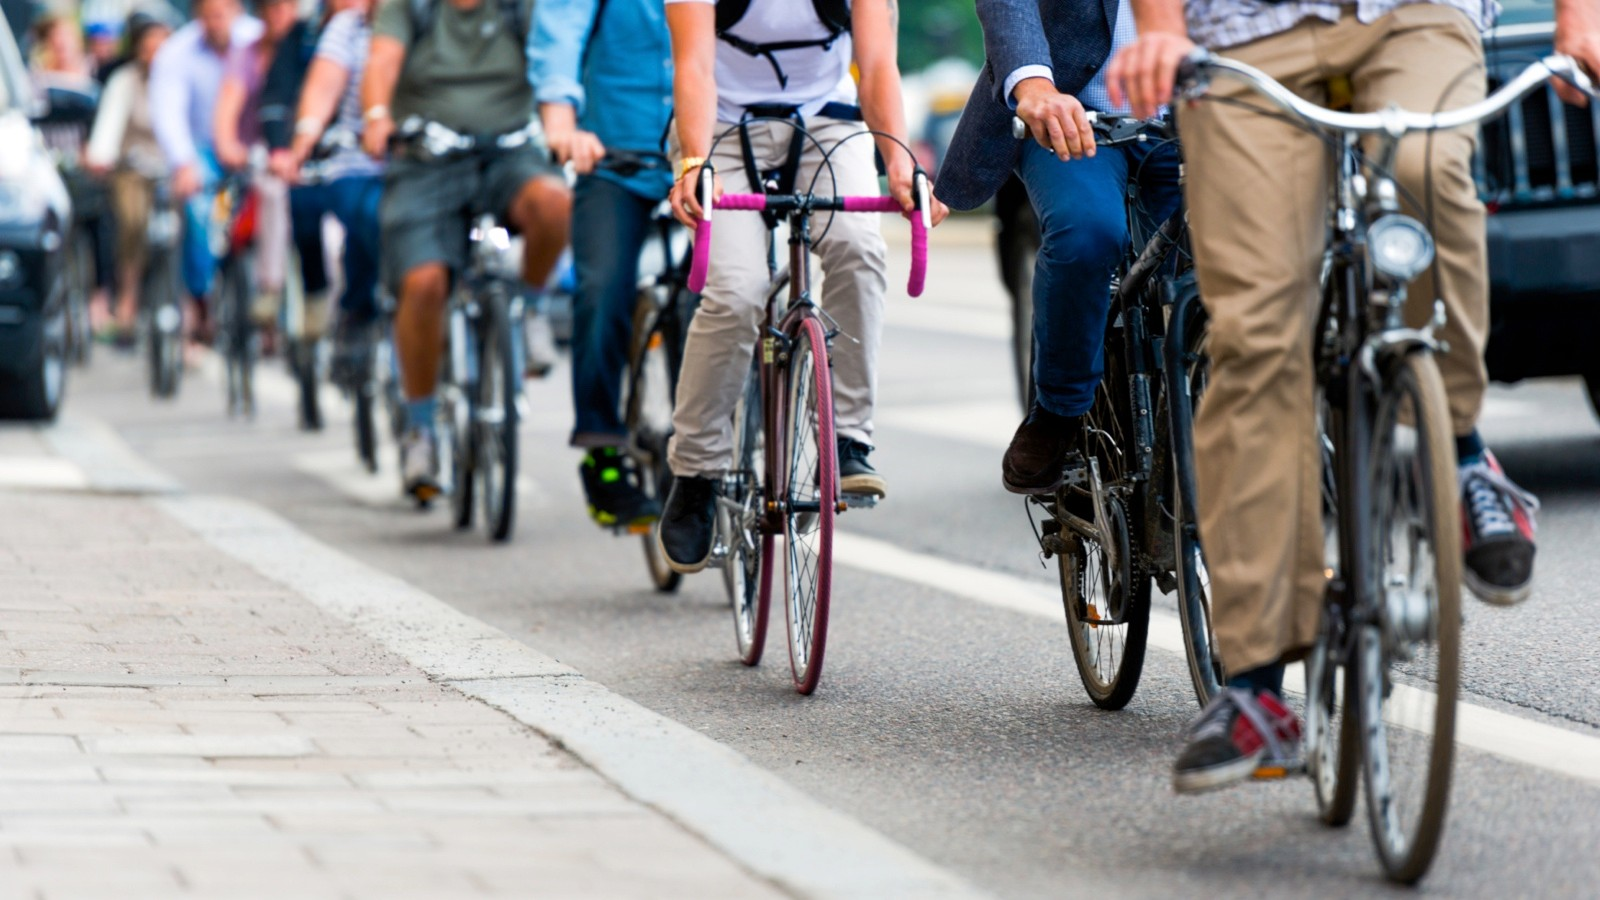 You can commute on any bike, but some are more suitable than others